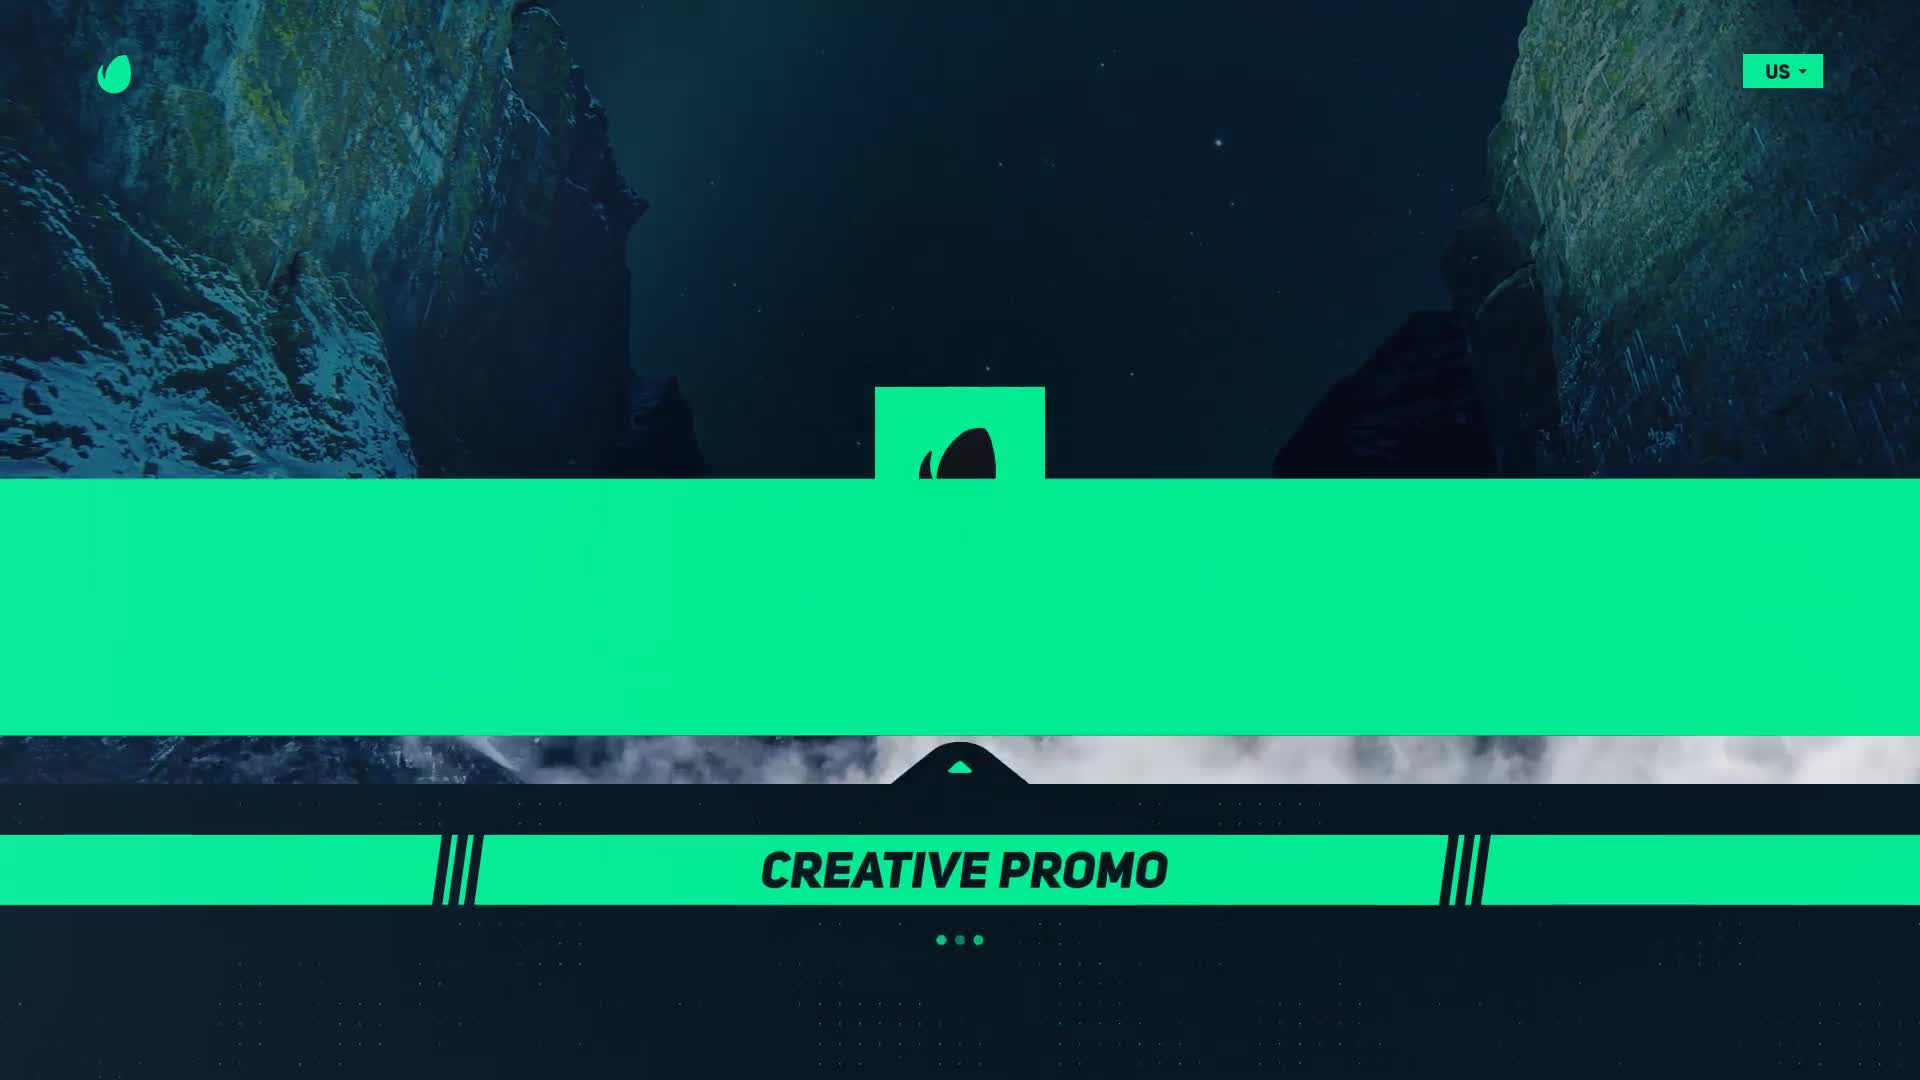 Corporate Slides and Titles - Download Videohive 21197134